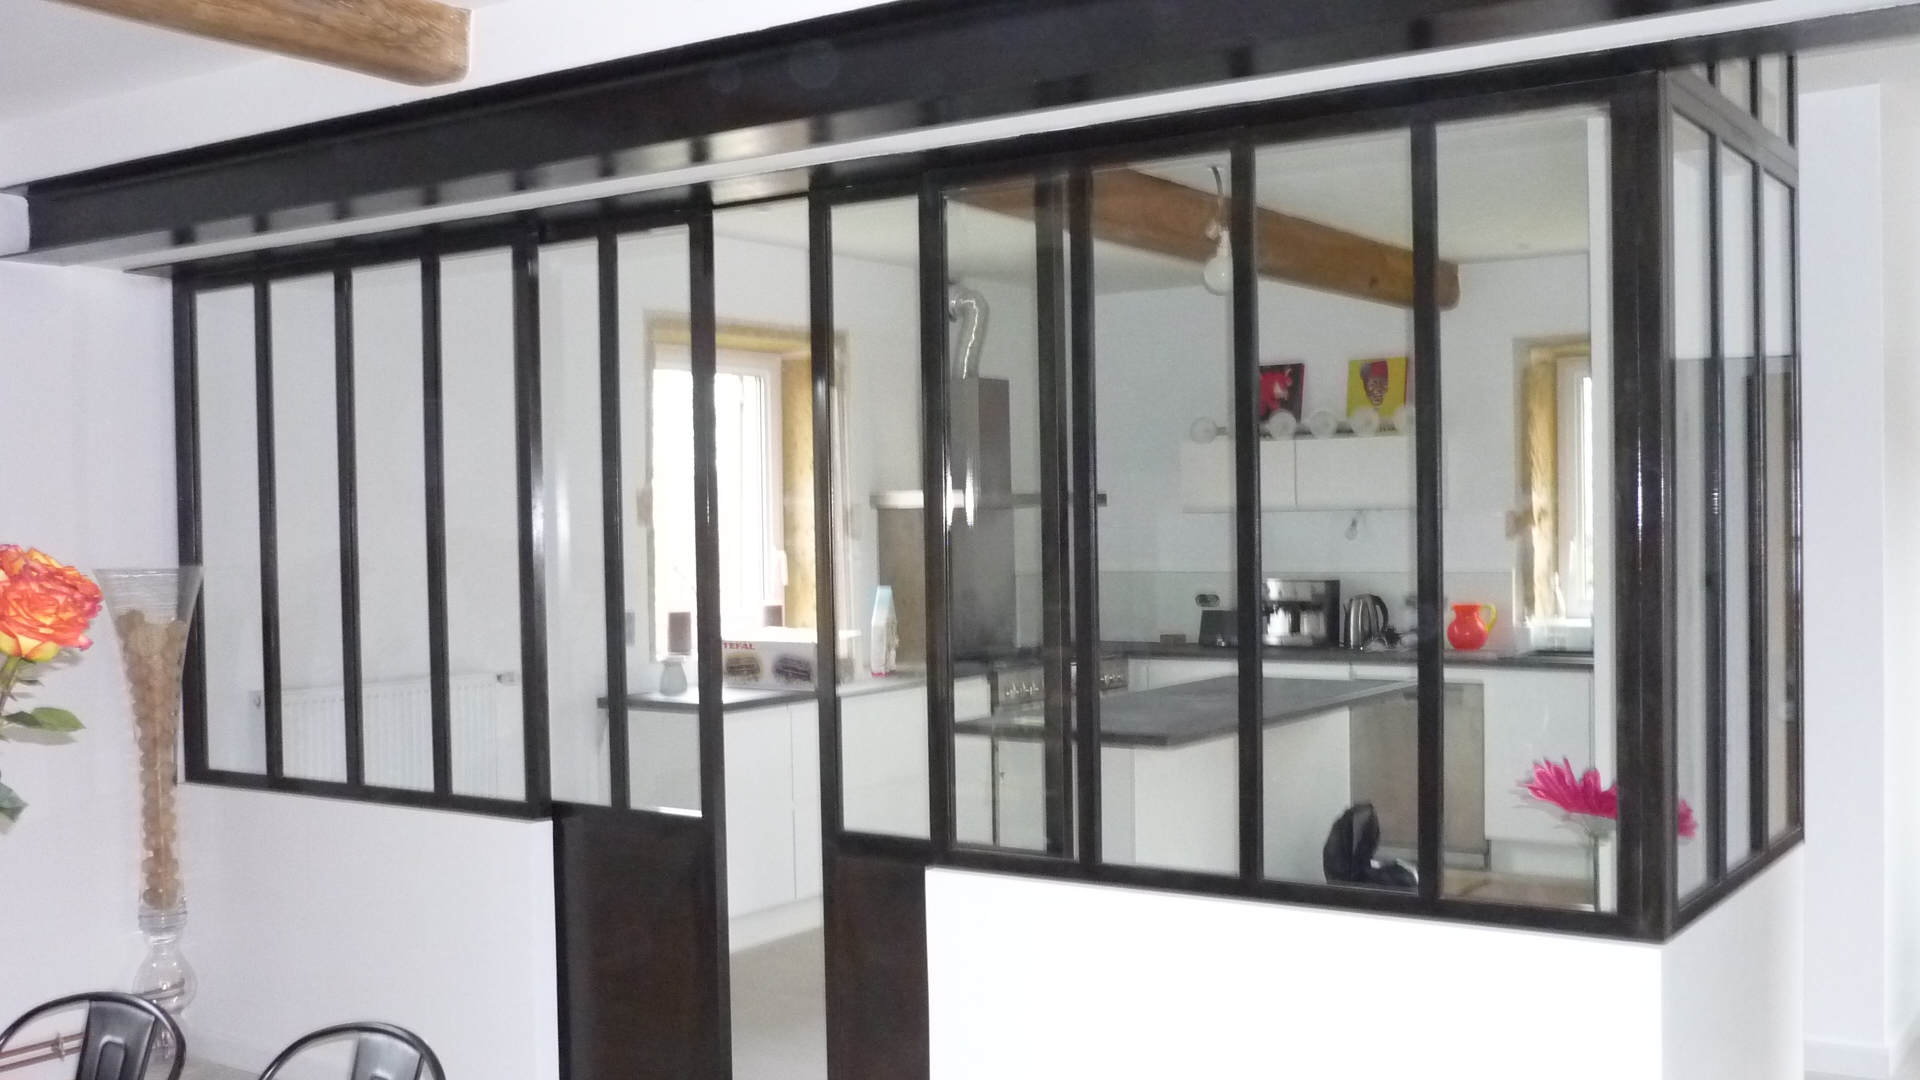 cloisonner une mezzanine avant cloisonner sans travaux cuest possible maison extension. Black Bedroom Furniture Sets. Home Design Ideas